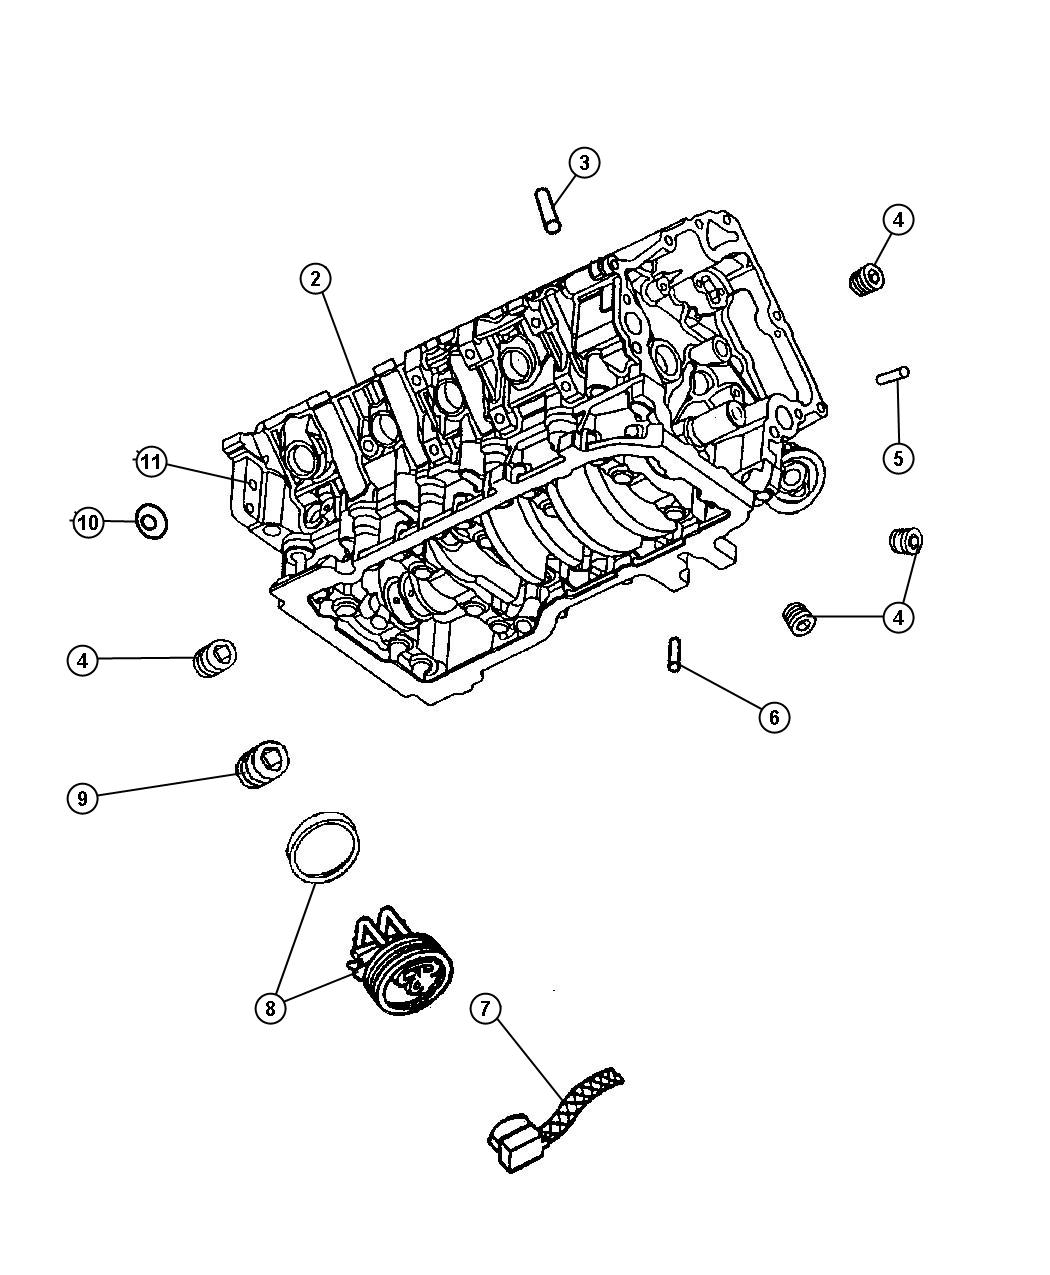 2016 Jeep Wrangler Engine Block Heater For 3 7l V6 And 4